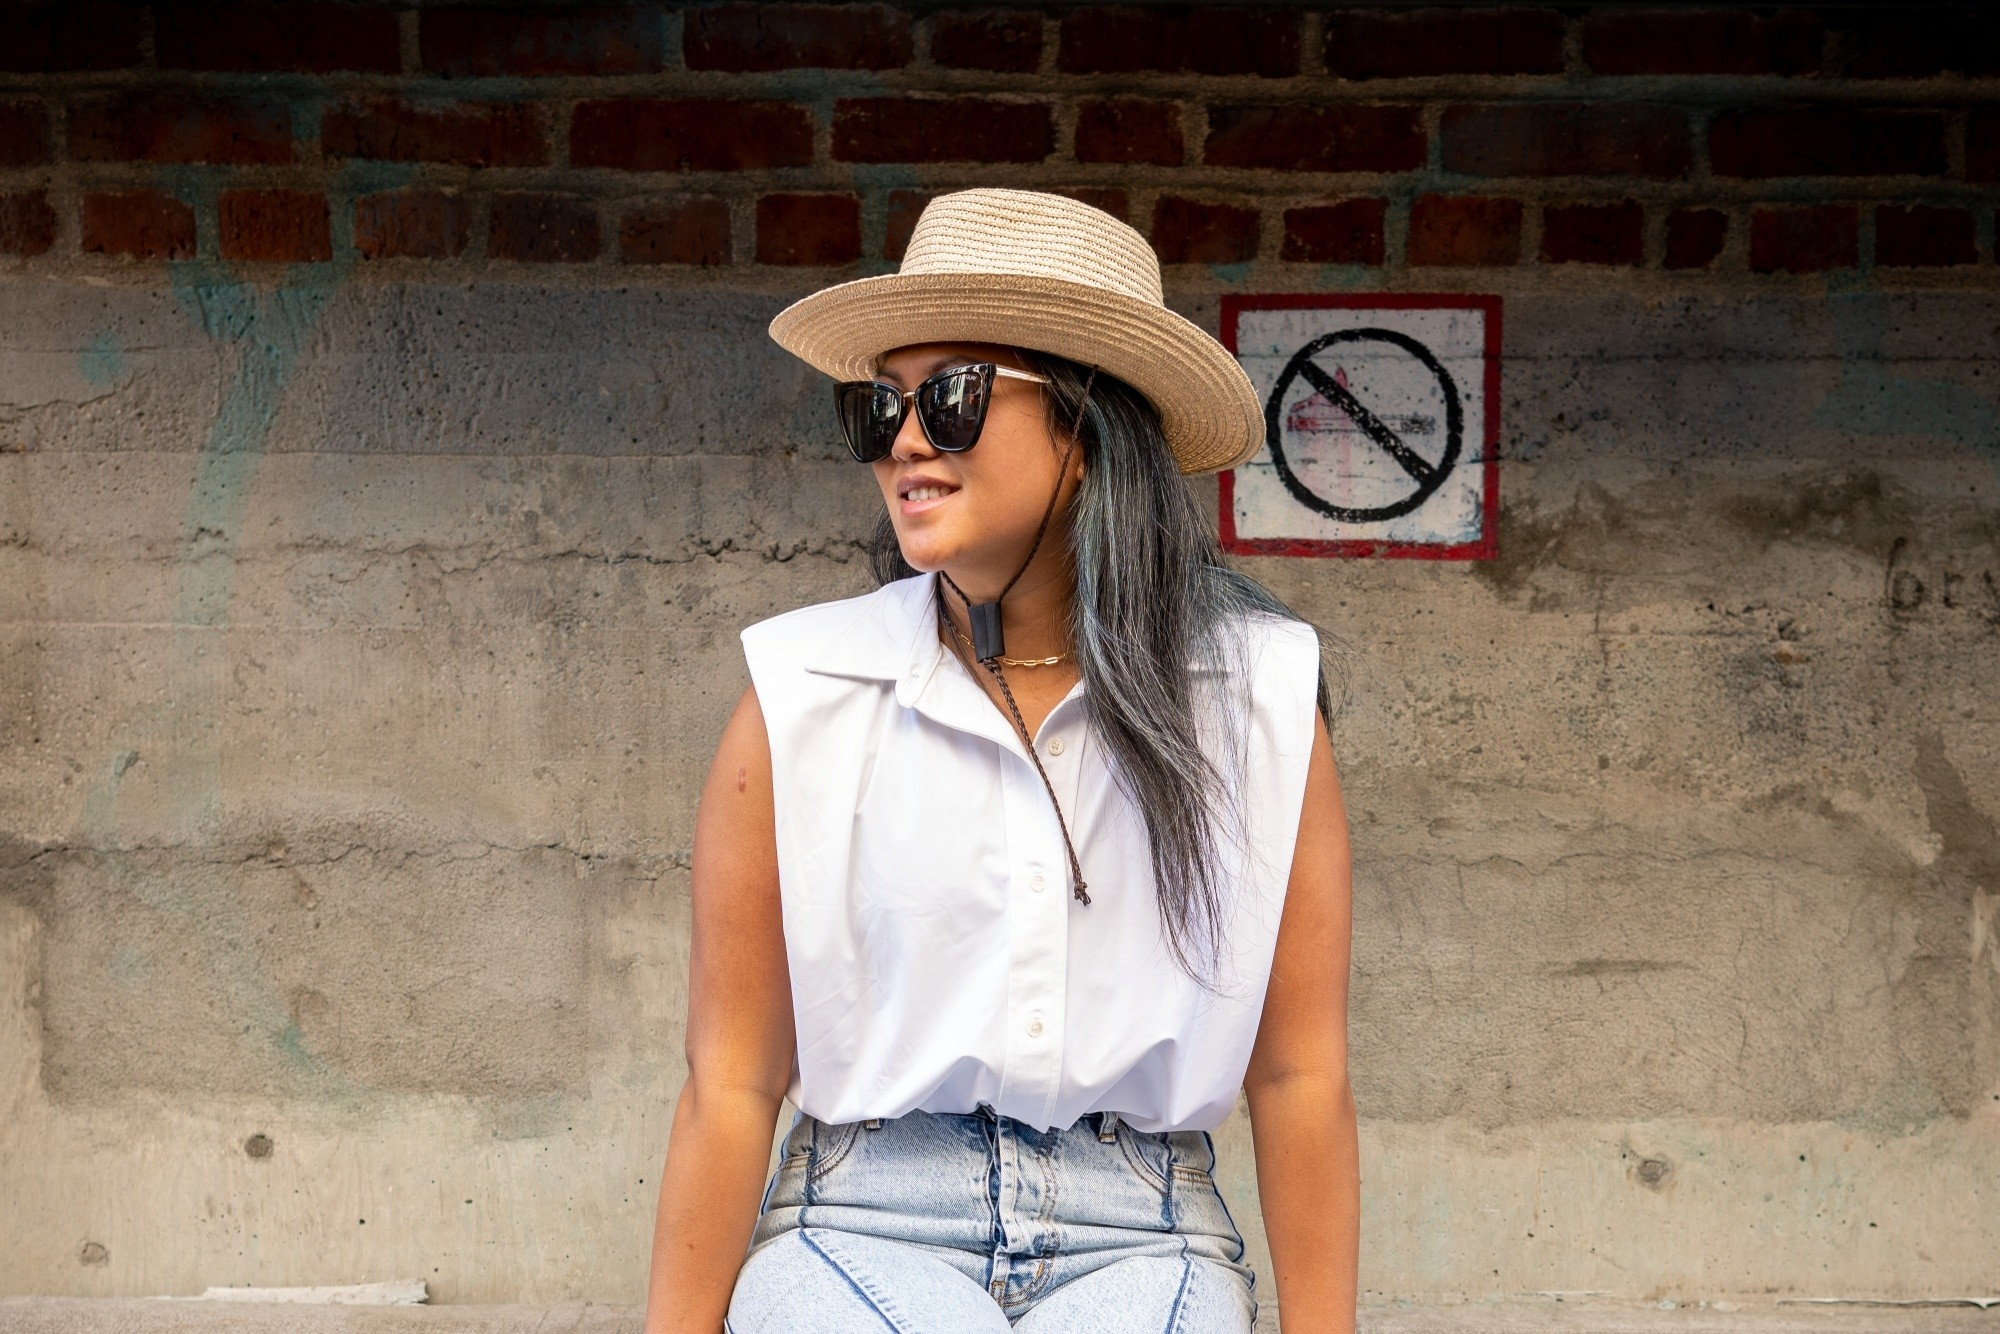 Asian woman with ash gray hair for morena skin wearing a hat and white top